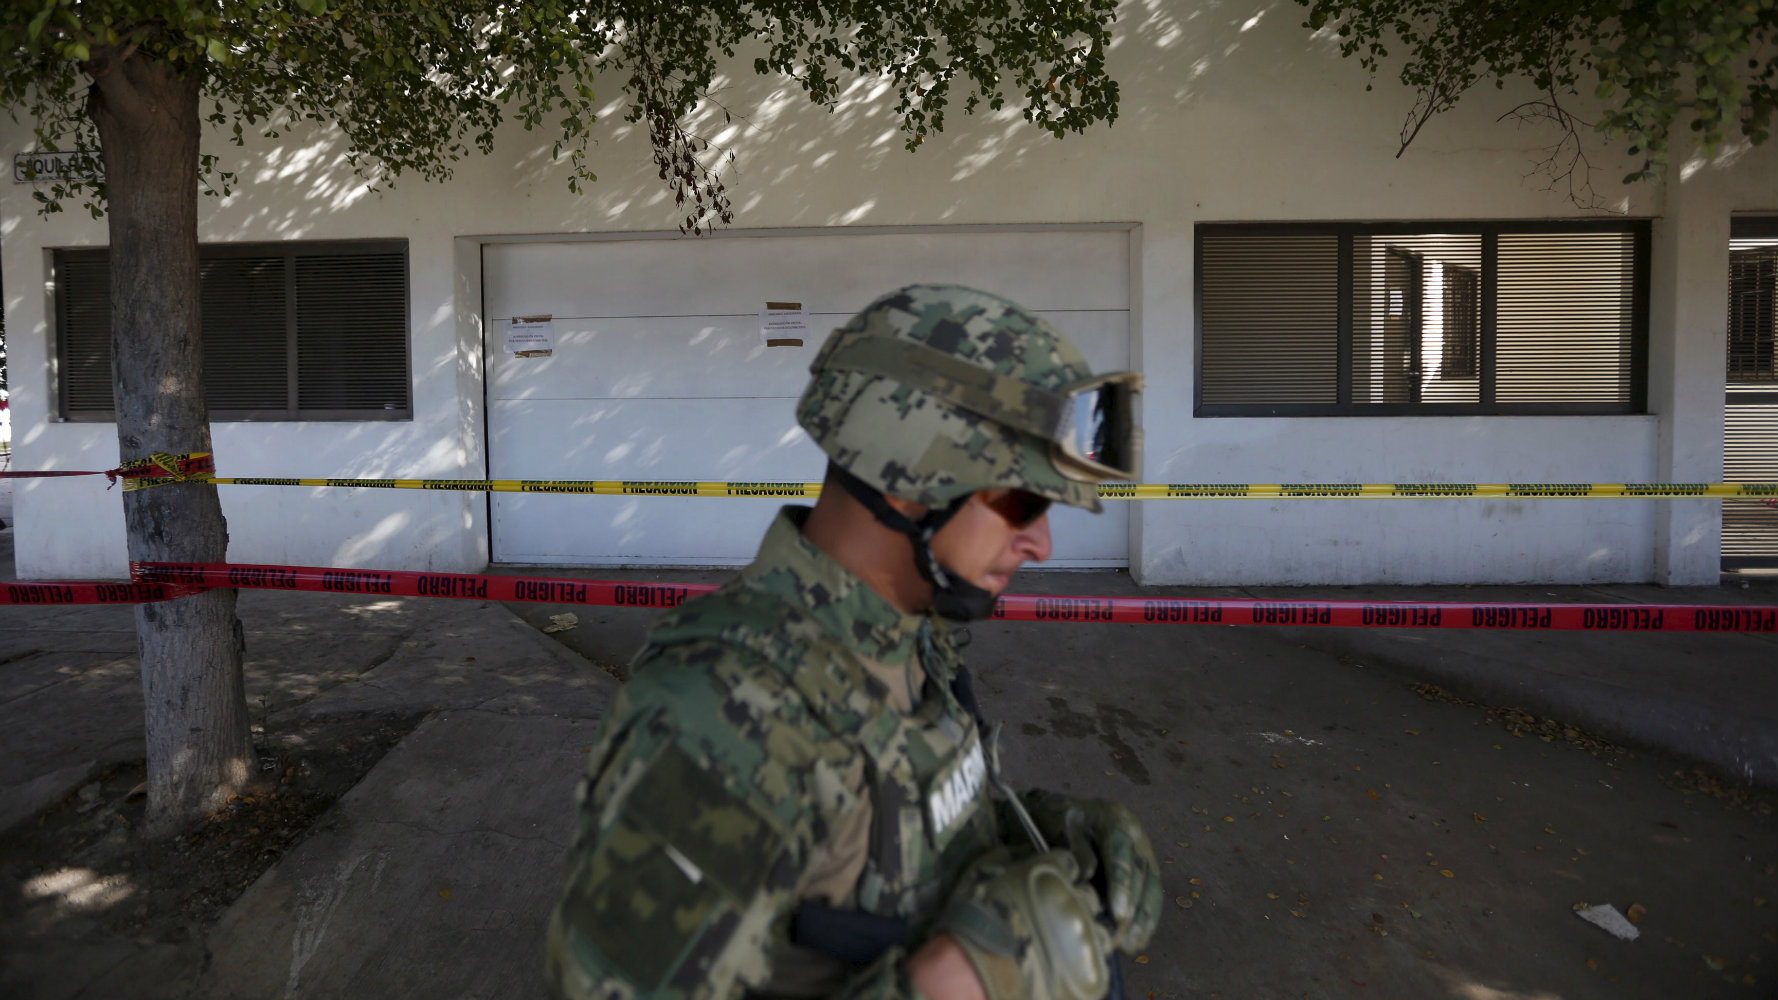 """A soldier keeps watch outside the house where five people were shot dead during an operation to recapture the world's top drug lord Joaquin """"El Chapo"""" Guzman at Jiquilpan Boulevard in Los Mochis, in Sinaloa state, Mexico, January 10, 2016. A secretive meeting that Hollywood star Sean Penn orchestrated with Joaquin """"Chapo"""" Guzman in a jungle hideout late last year helped Mexico's government catch the world's most wanted drug lord, sources said. Guzman, the infamous boss of the Sinaloa drug cartel, was arrested in northwest Mexico on Friday morning, and sent back to the prison he broke out of in July through a mile-long tunnel that led straight into his cell. Mexico aims to extradite Guzman to the United States as soon as possible. REUTERS/Edgard Garrido"""